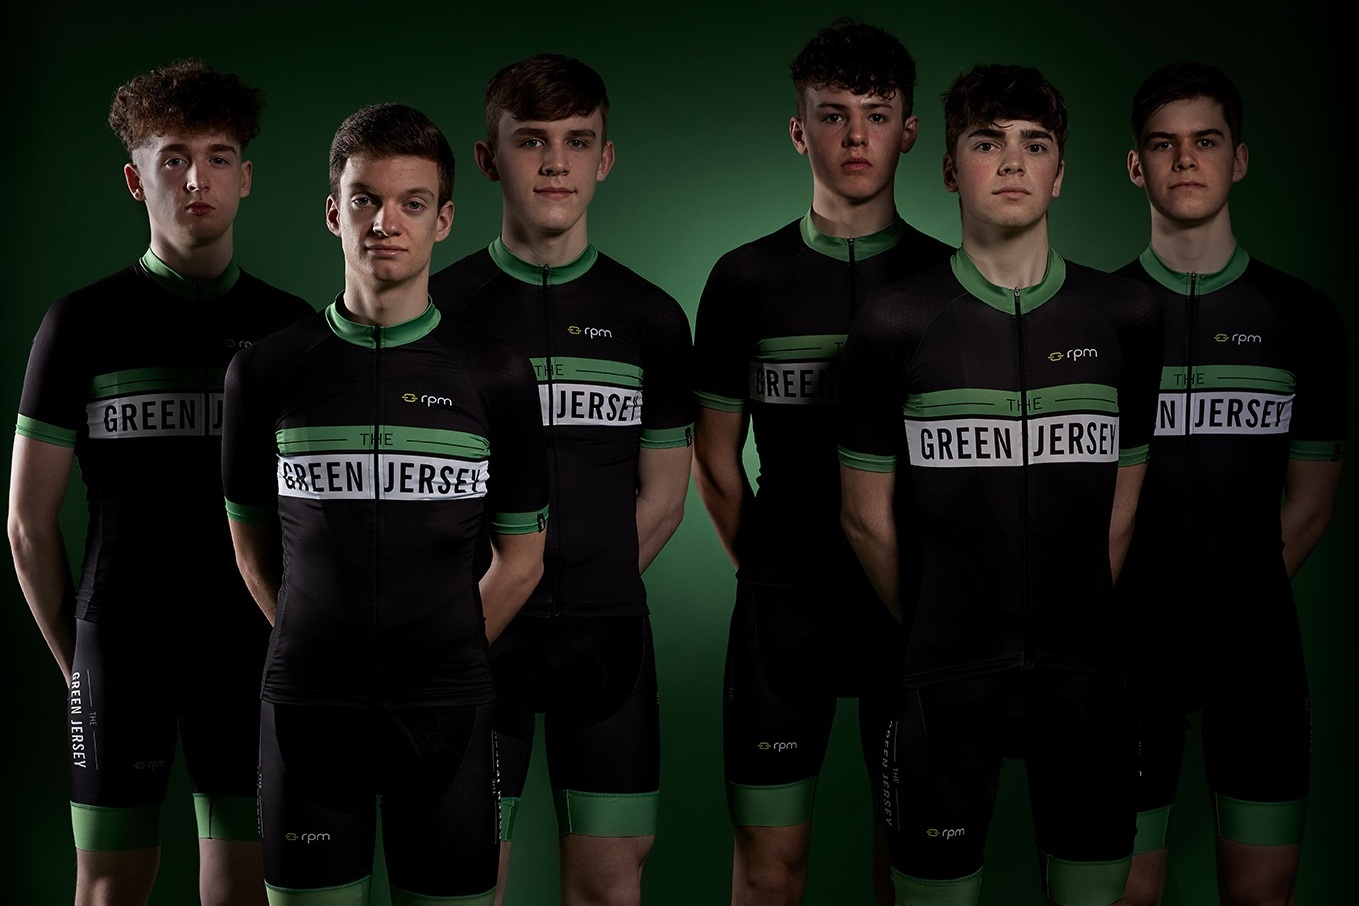 The Team - We are proud to support young riders in their aspirations within the sport. Our riders mainly race on the road but they have also won in MTB, Cyclocross and Track. We are always on the lookout for extra support, so if you think you can help please get in touch.